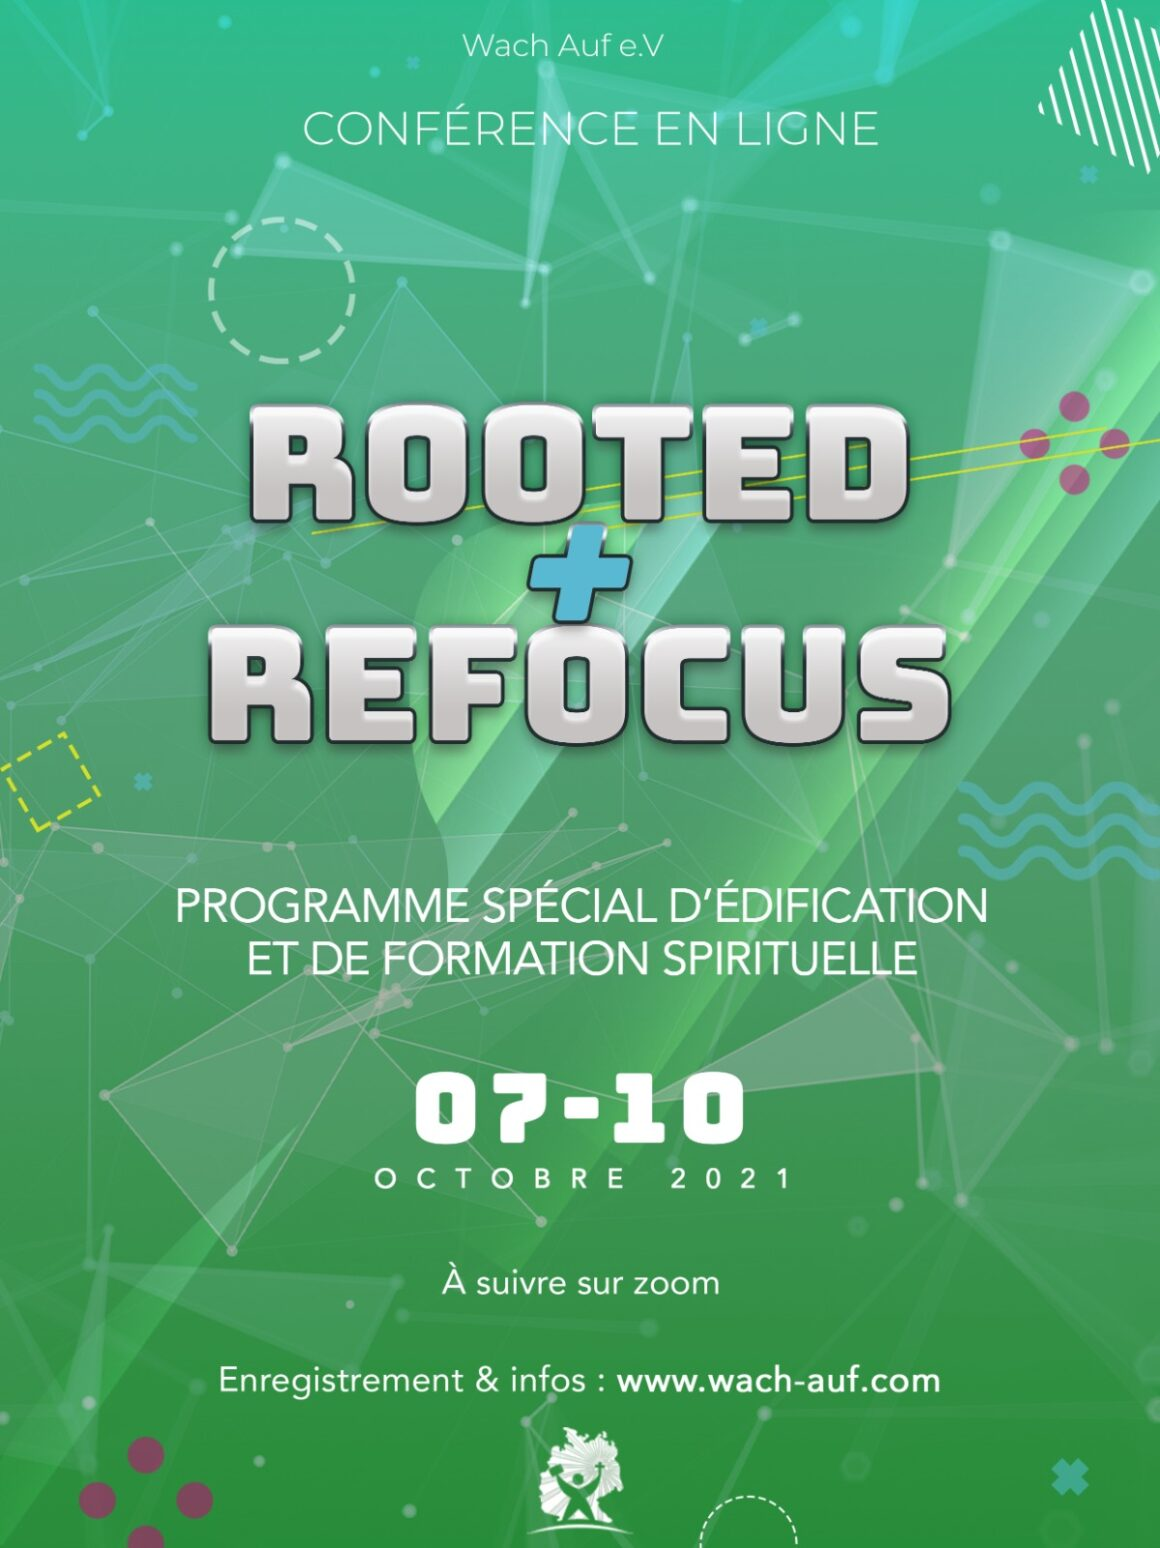 Rooted + Refocus 07-10 Octobre 2021